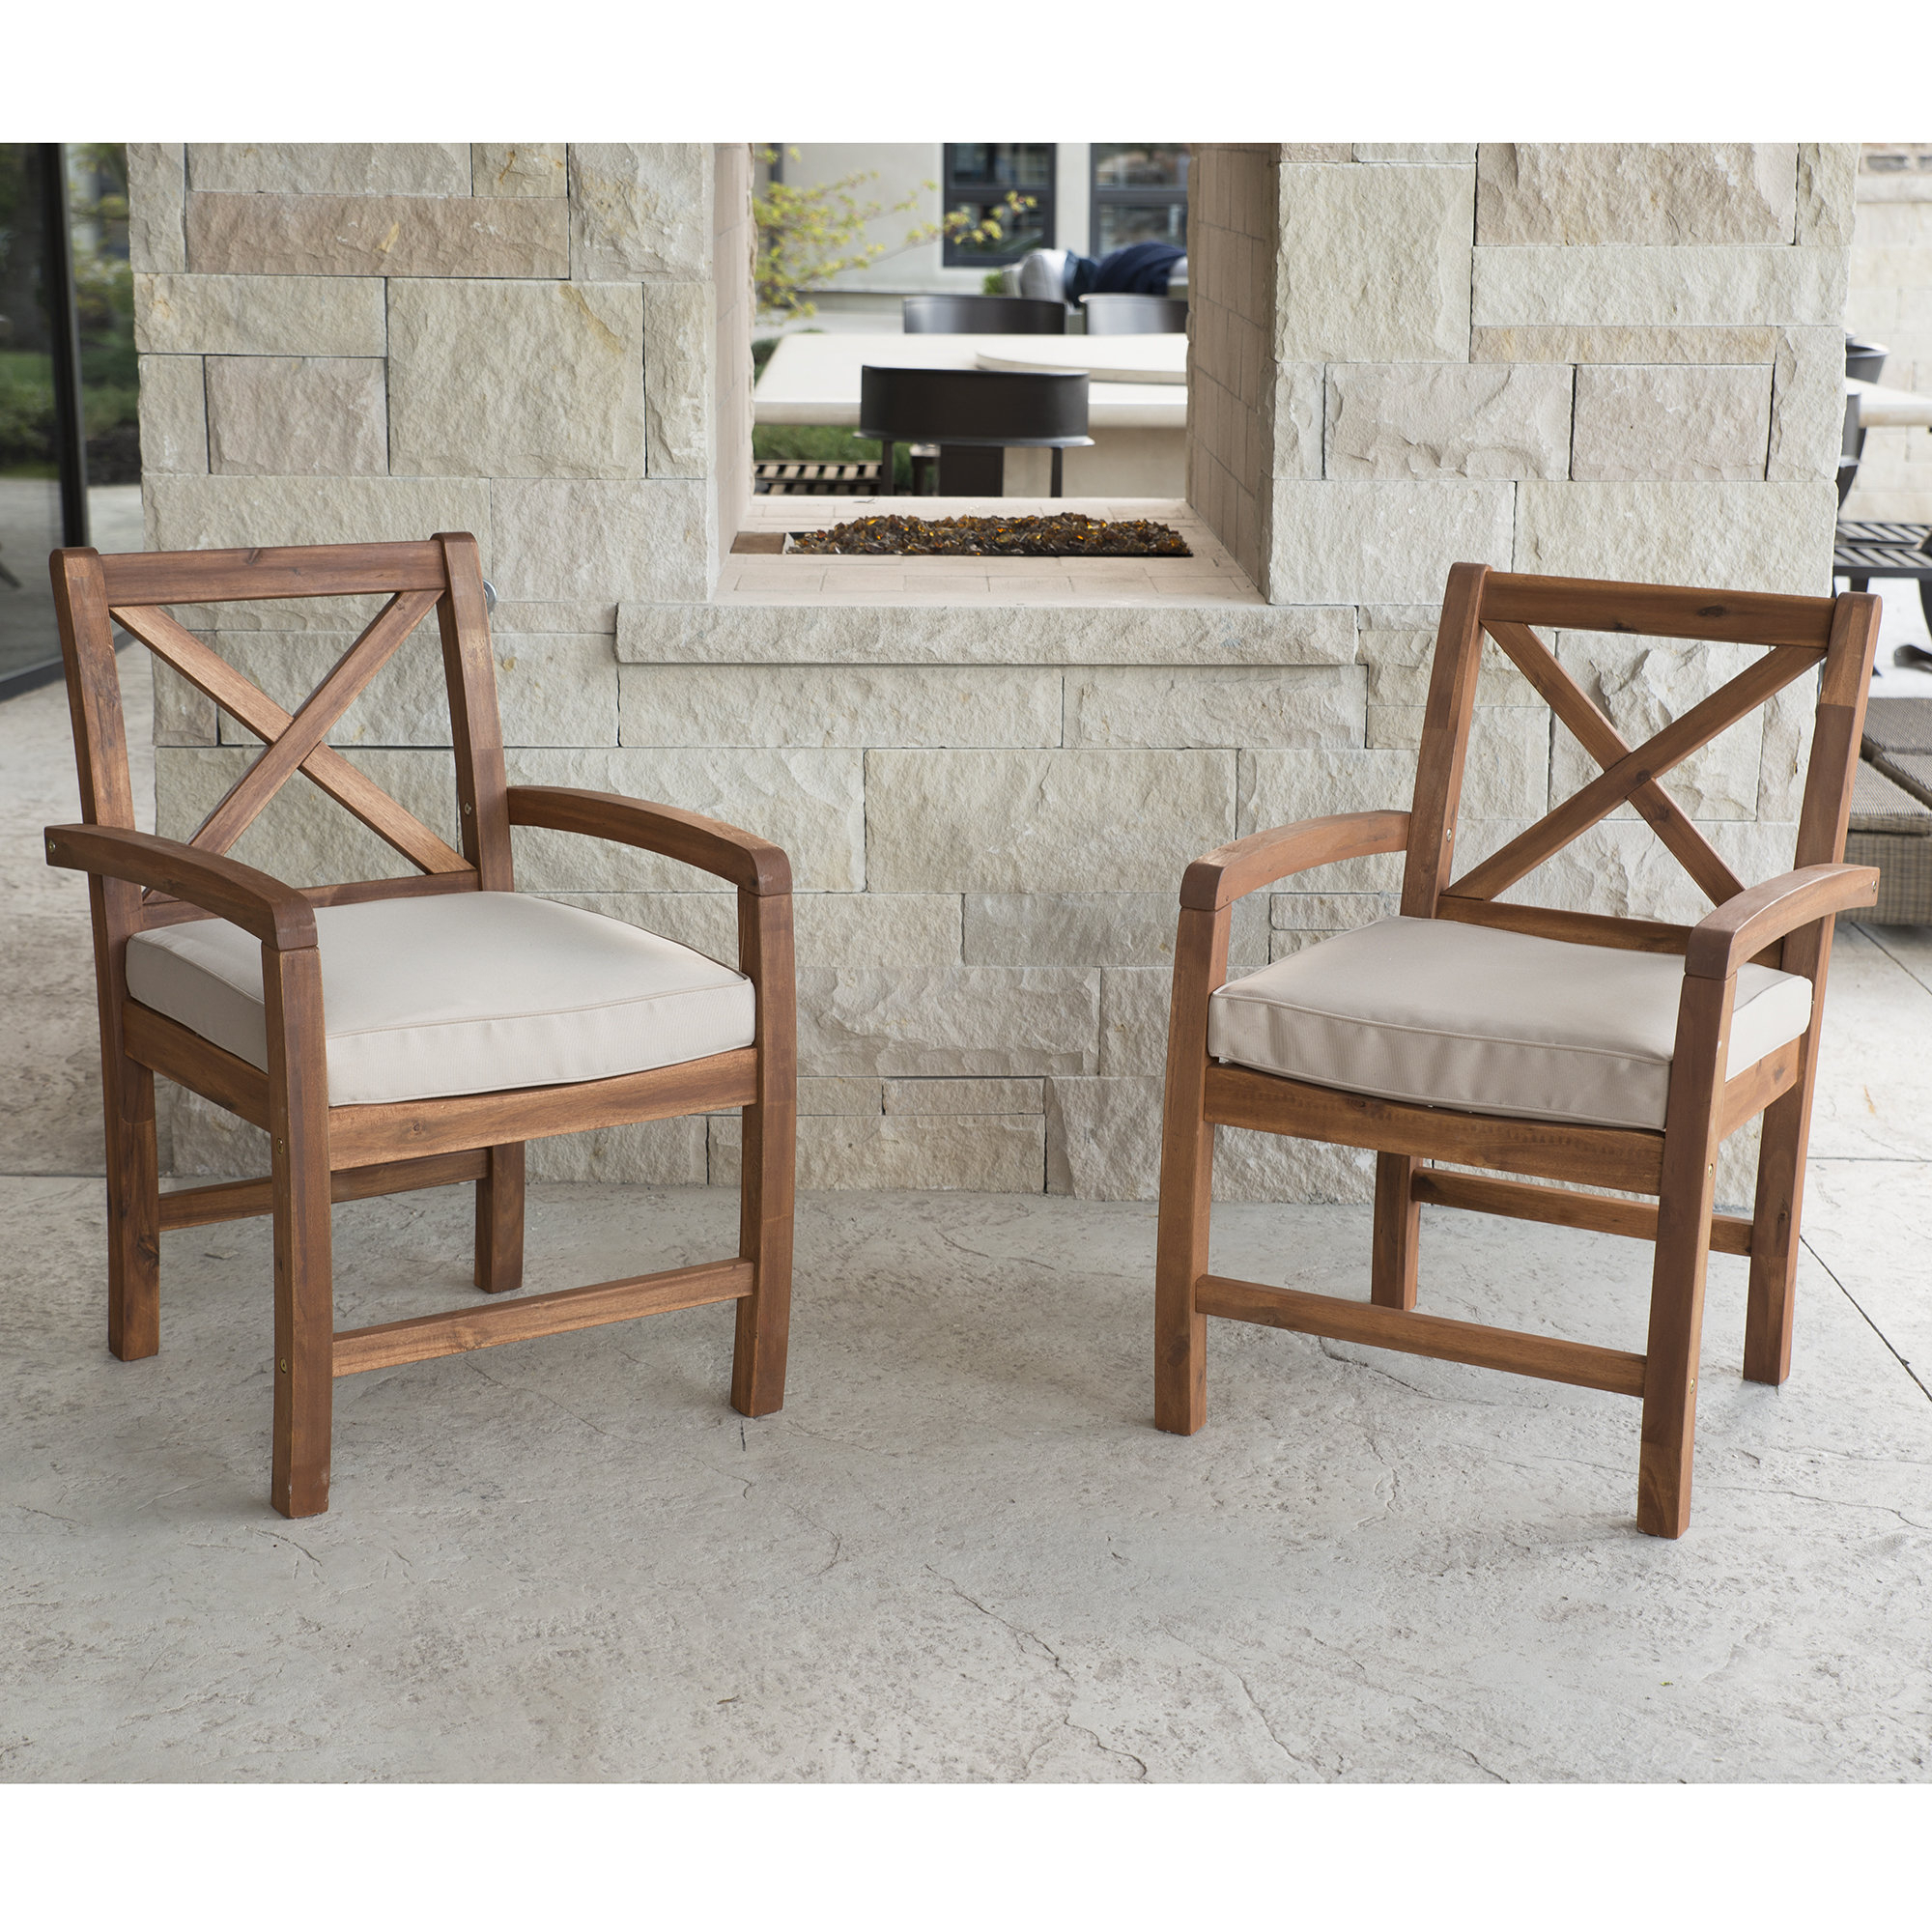 Widely Used Tim X Back Patio Loveseats With Cushions With Regard To Tim X Back Acacia Patio Chairs With Cushions (View 7 of 20)